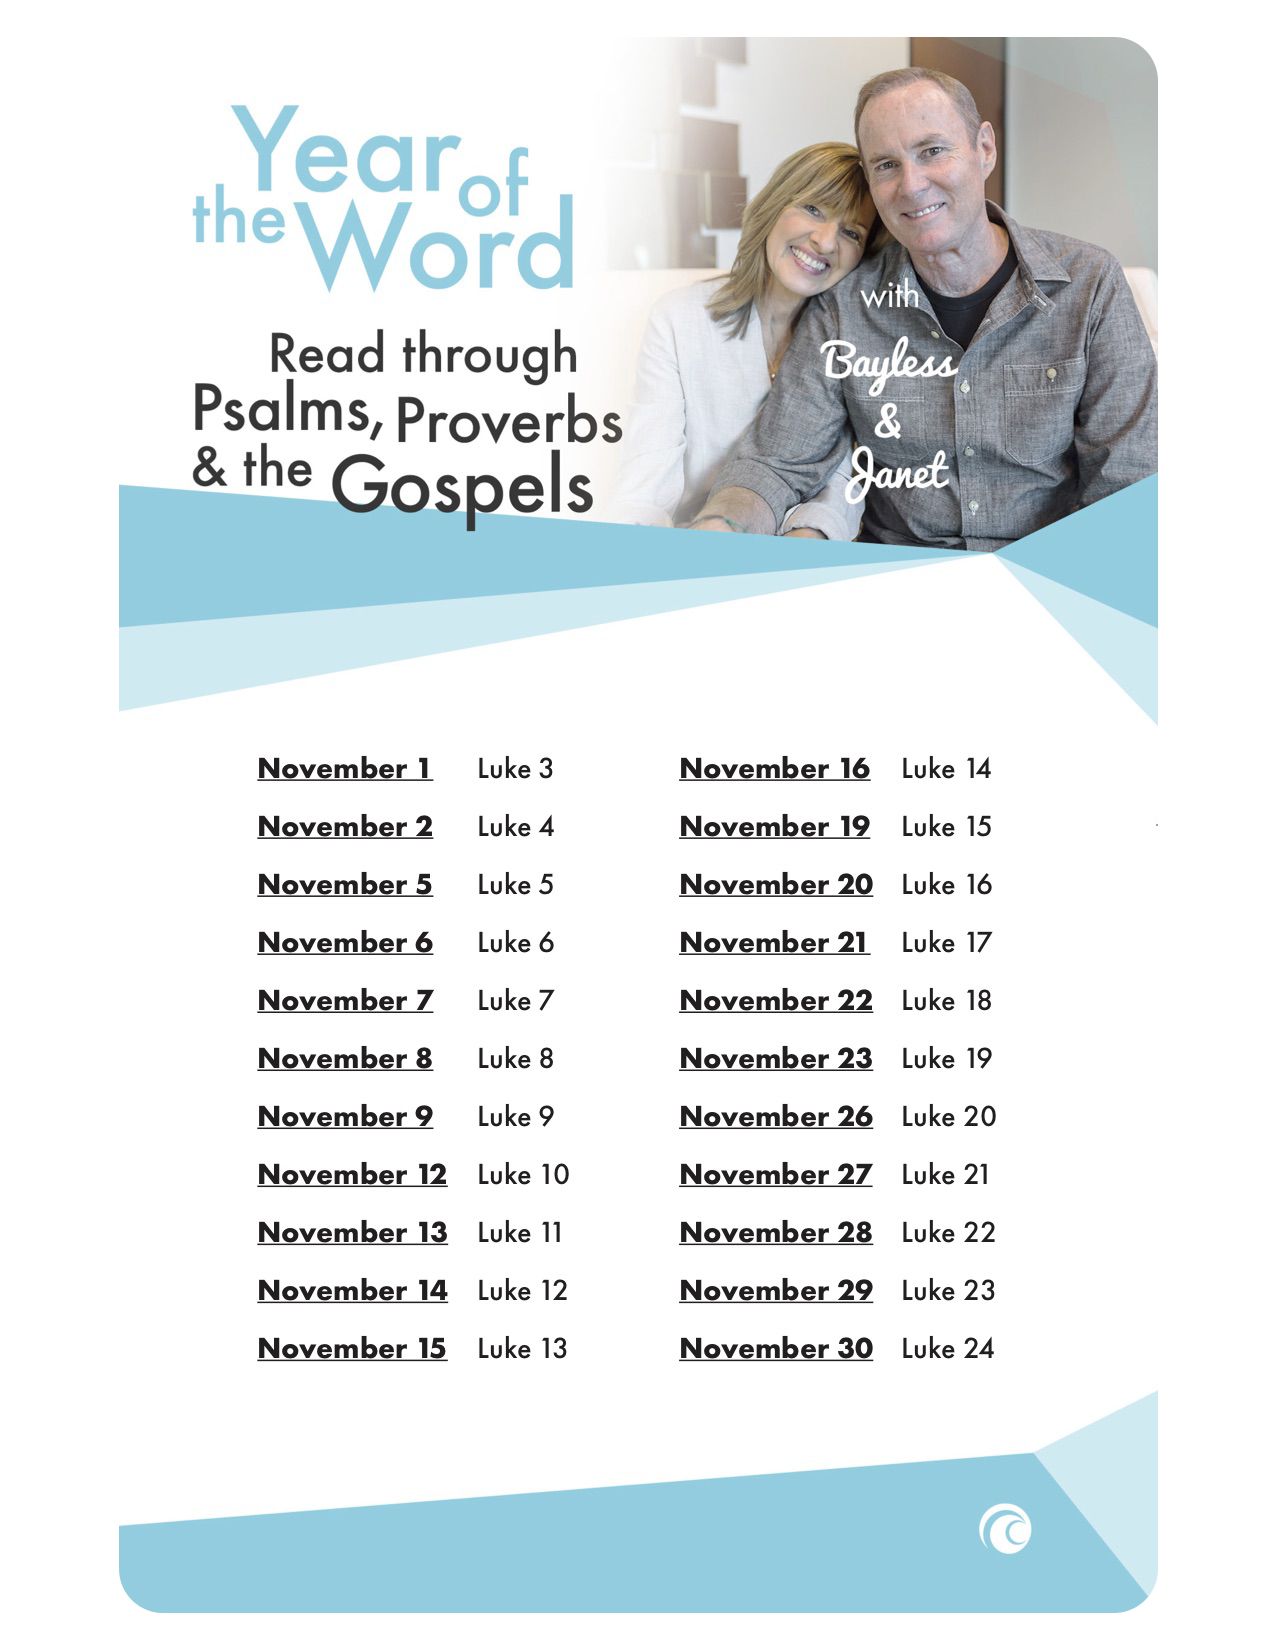 year of the word with bayless and janet read through psalms provers and the gospels schedule